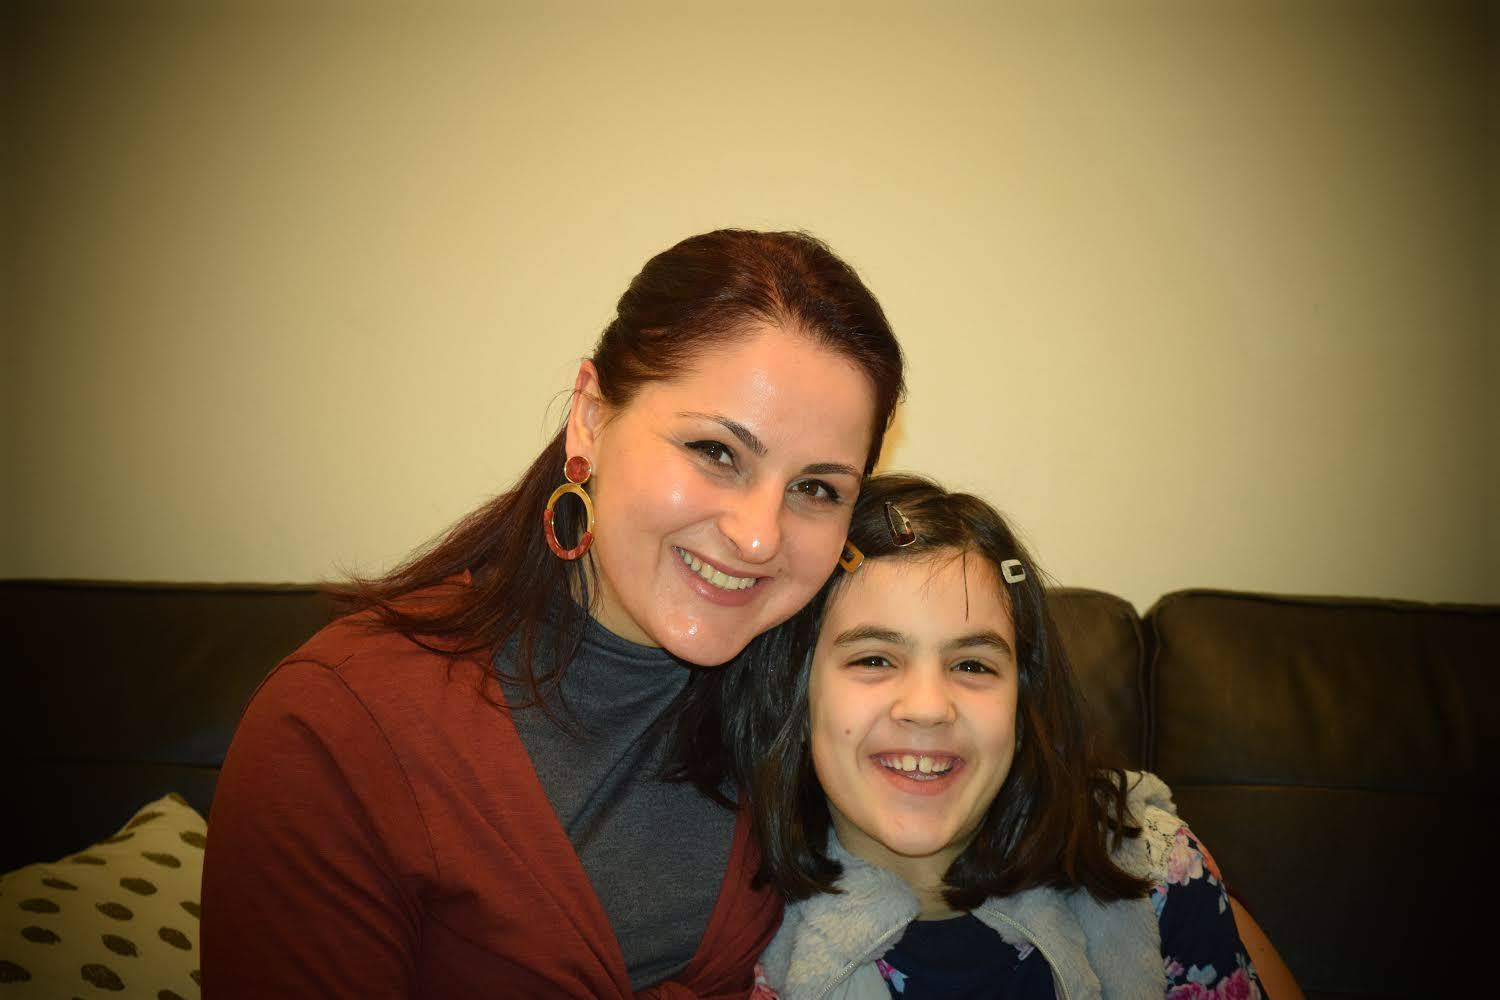 an interview with my daughter